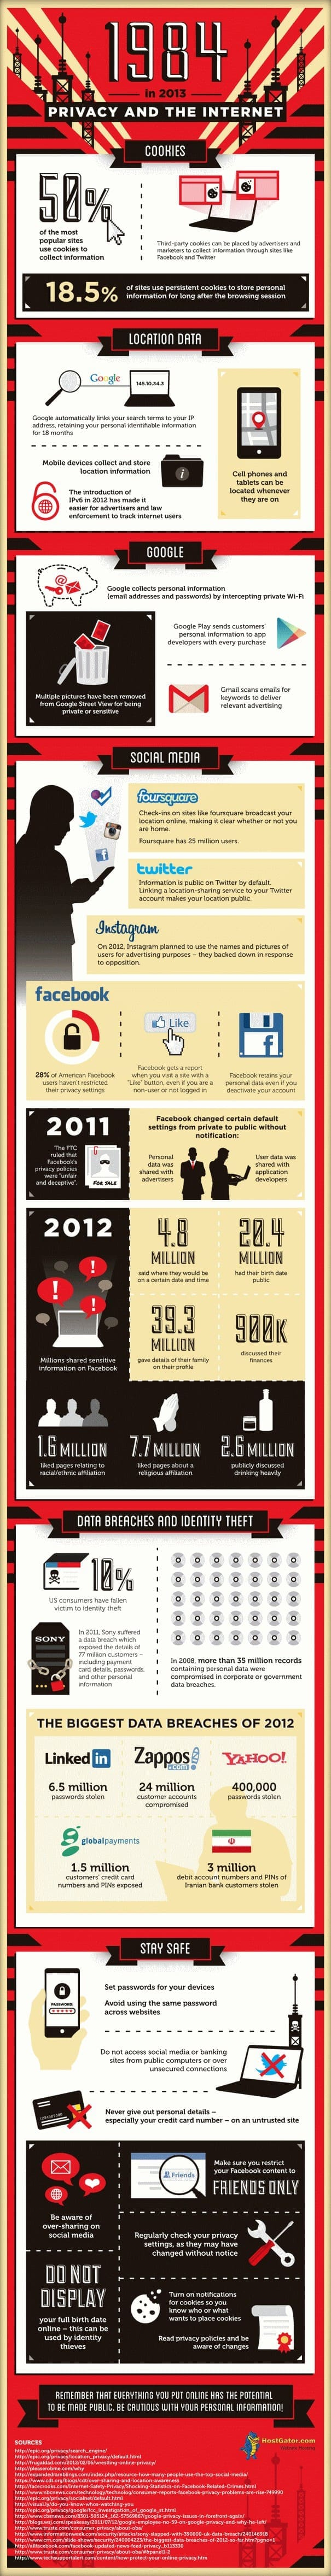 1984 in 2013 Privacy and The Internet Infographic